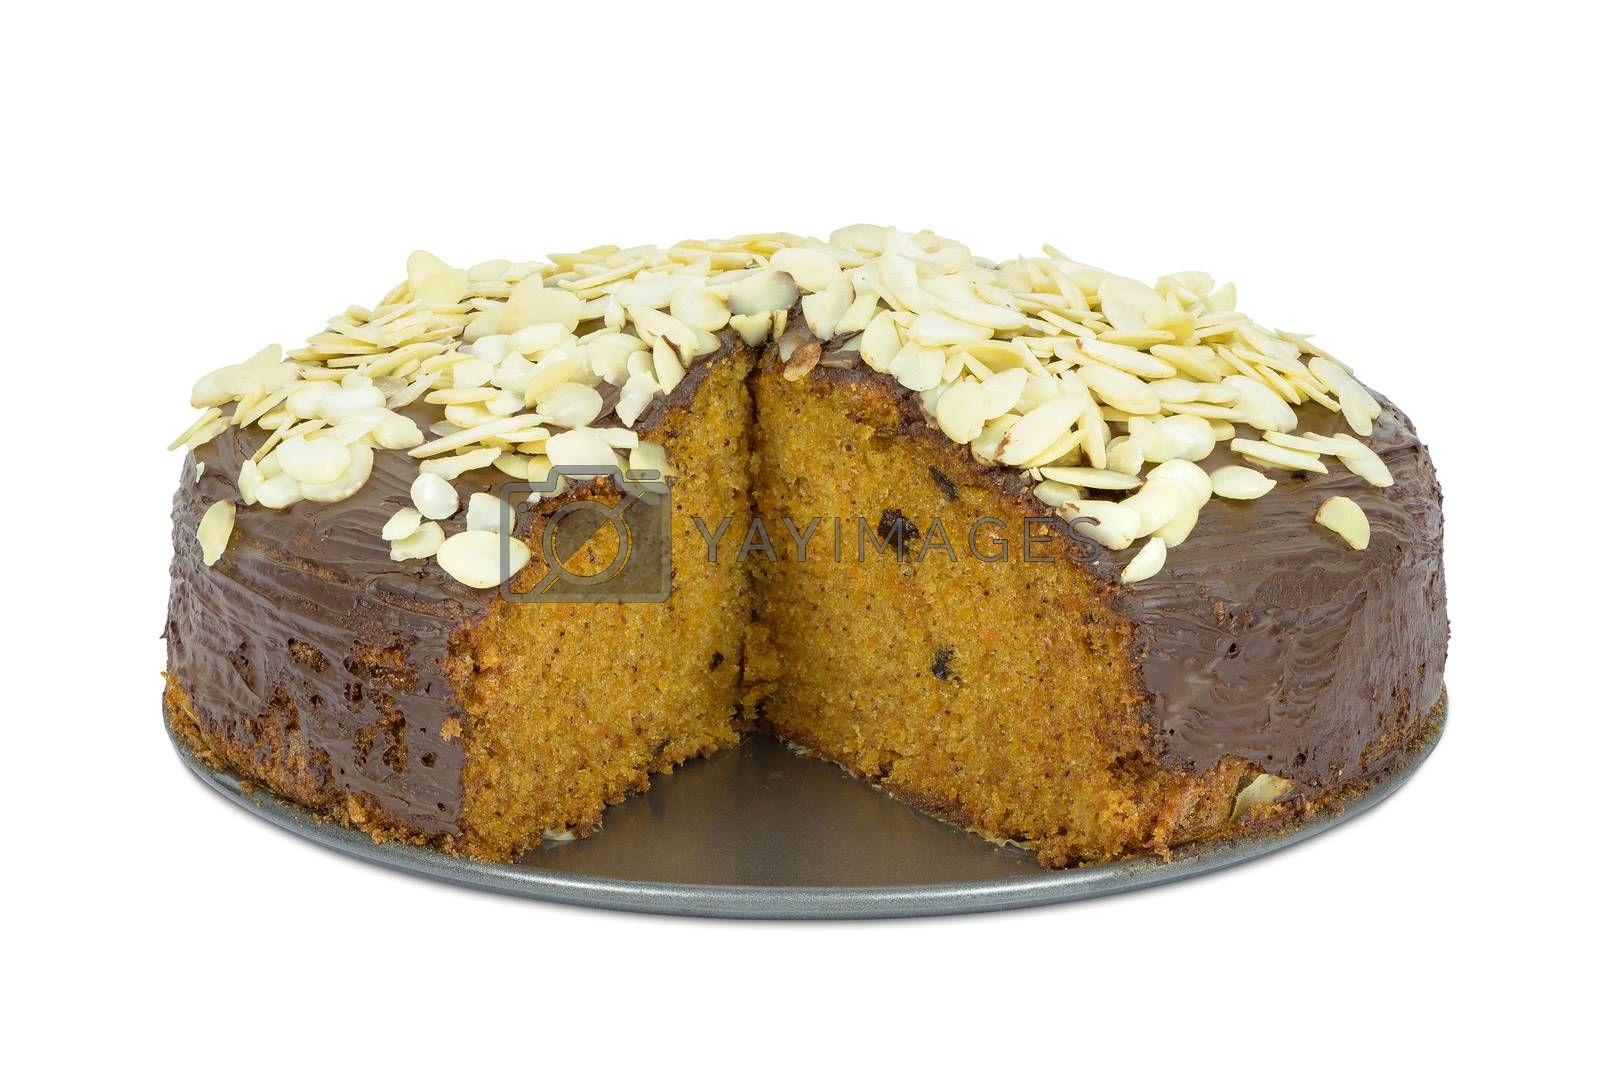 Carrot cake with almond flakes isolated on white background with clipping path